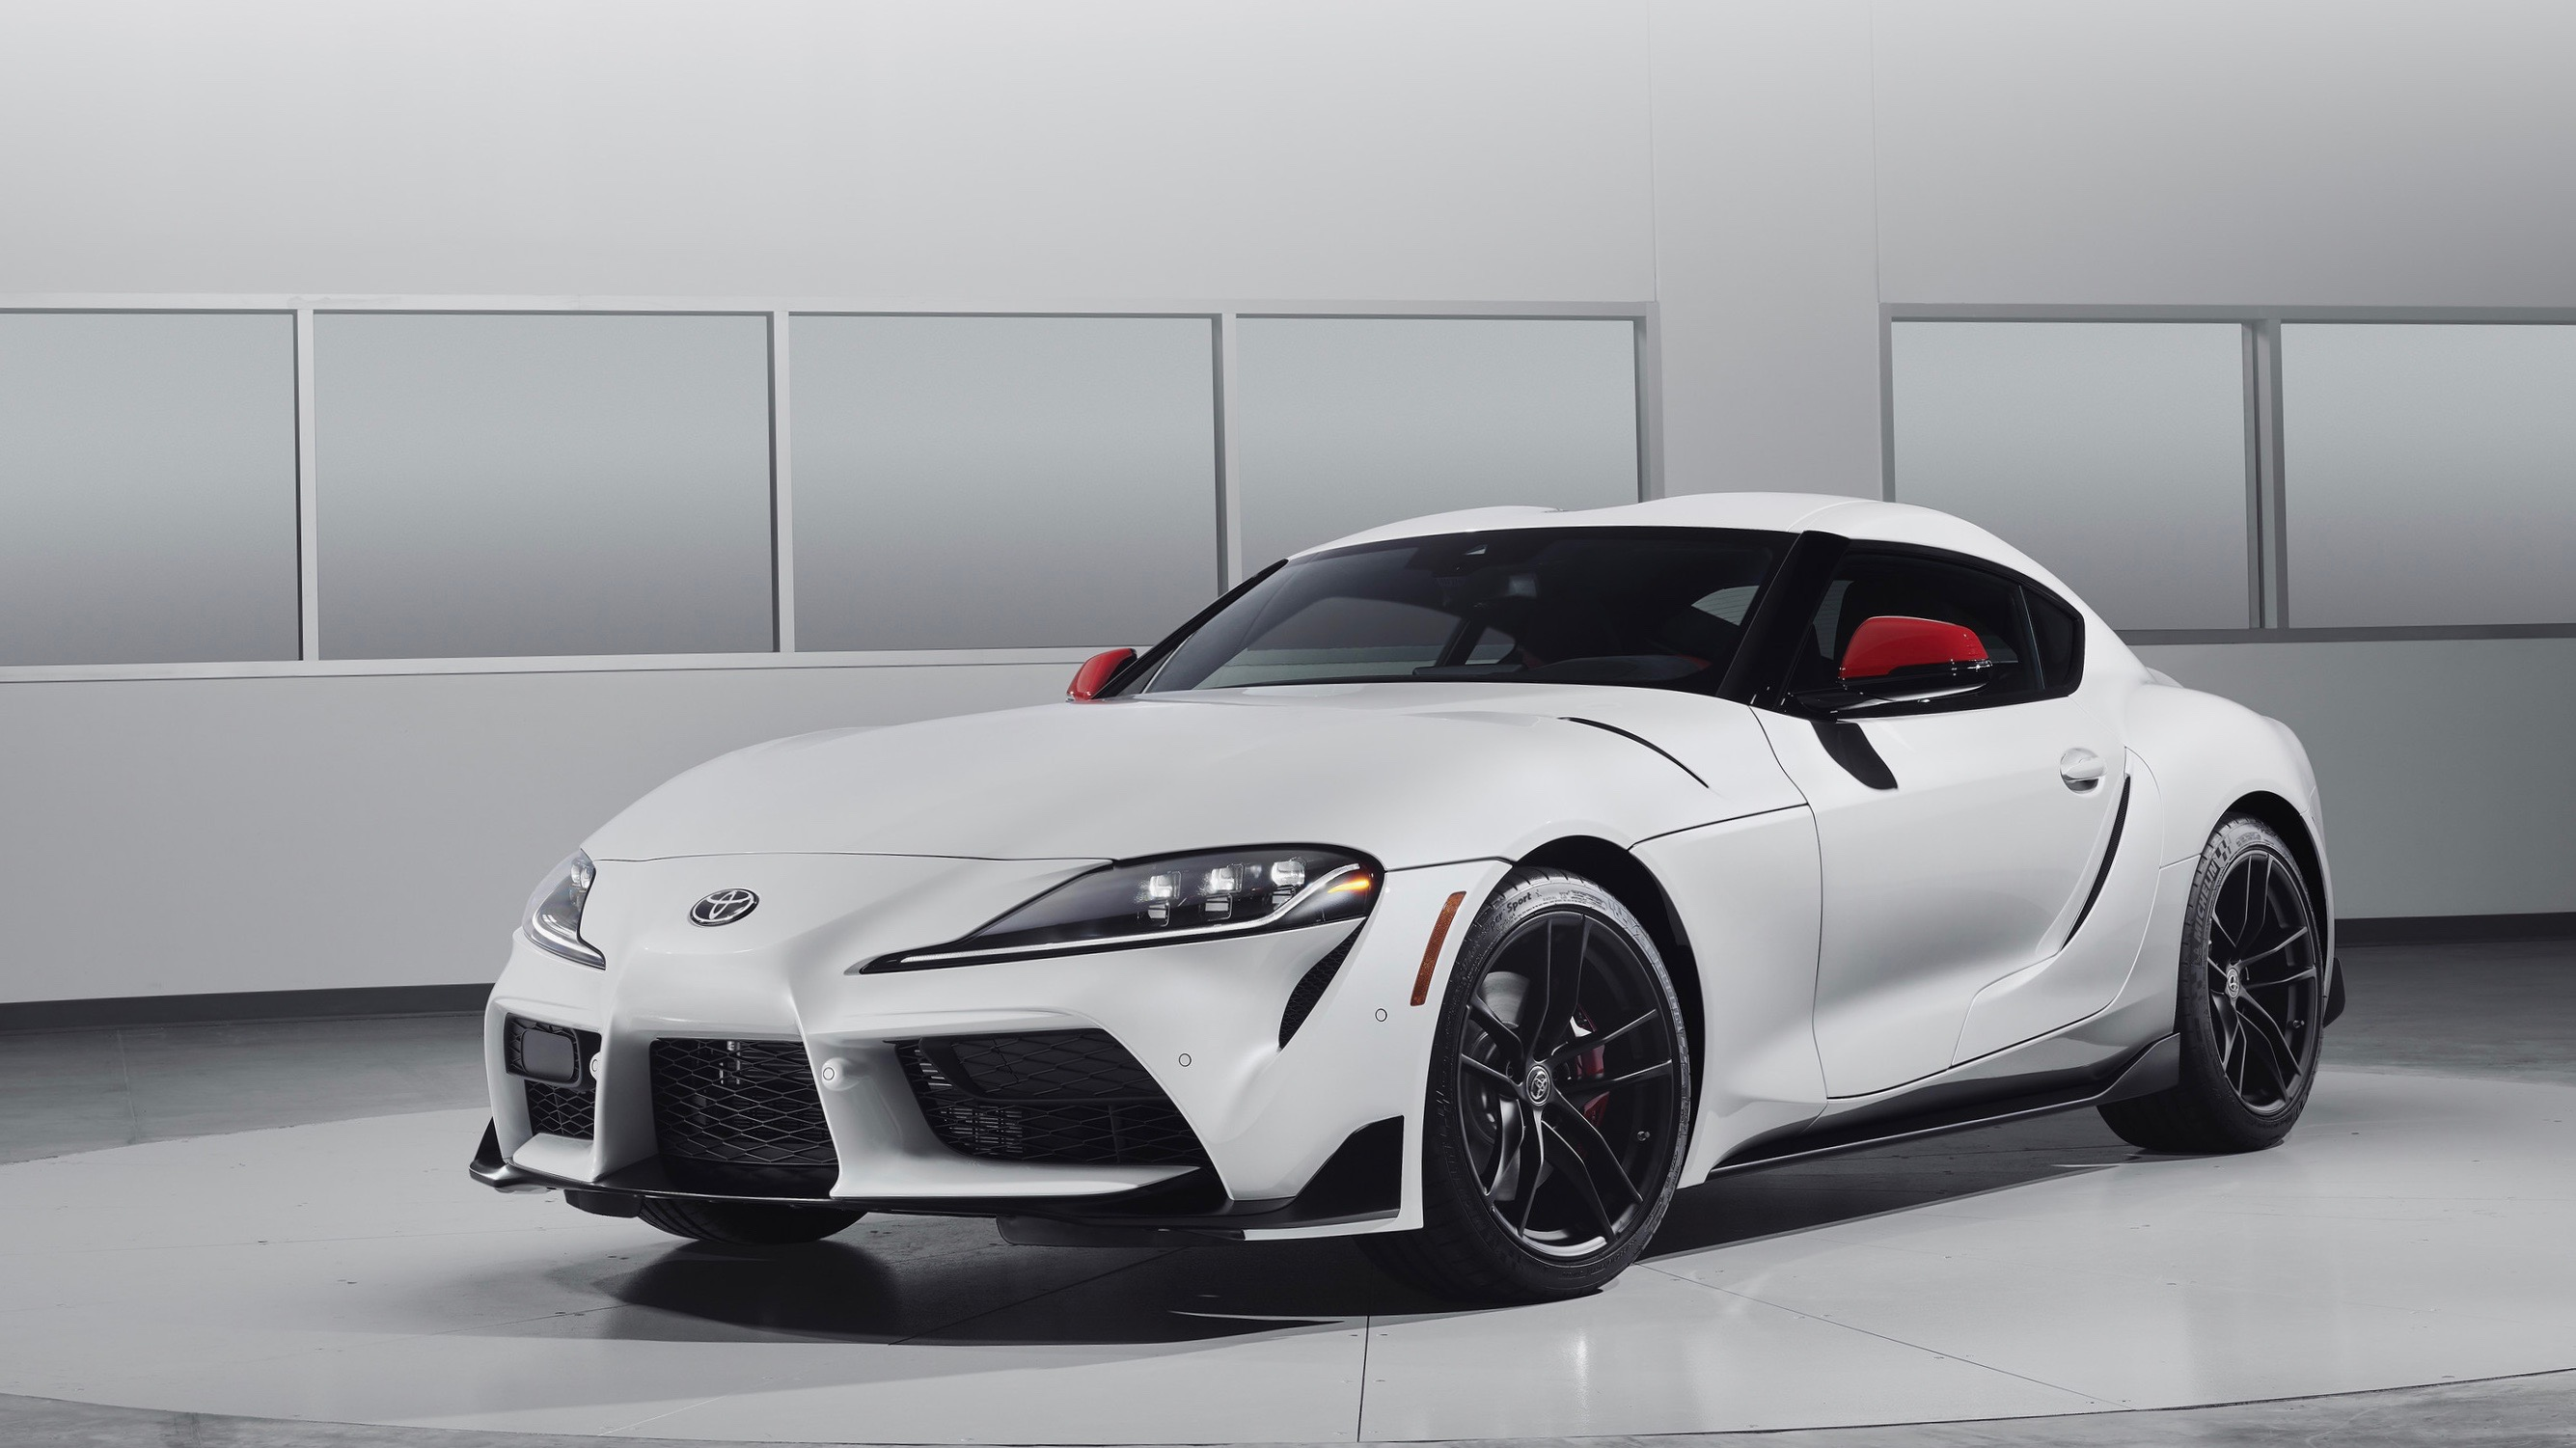 Toyota's 2020 GR Supra will support wireless CarPlay, but only as part of $4k 'Premium' package